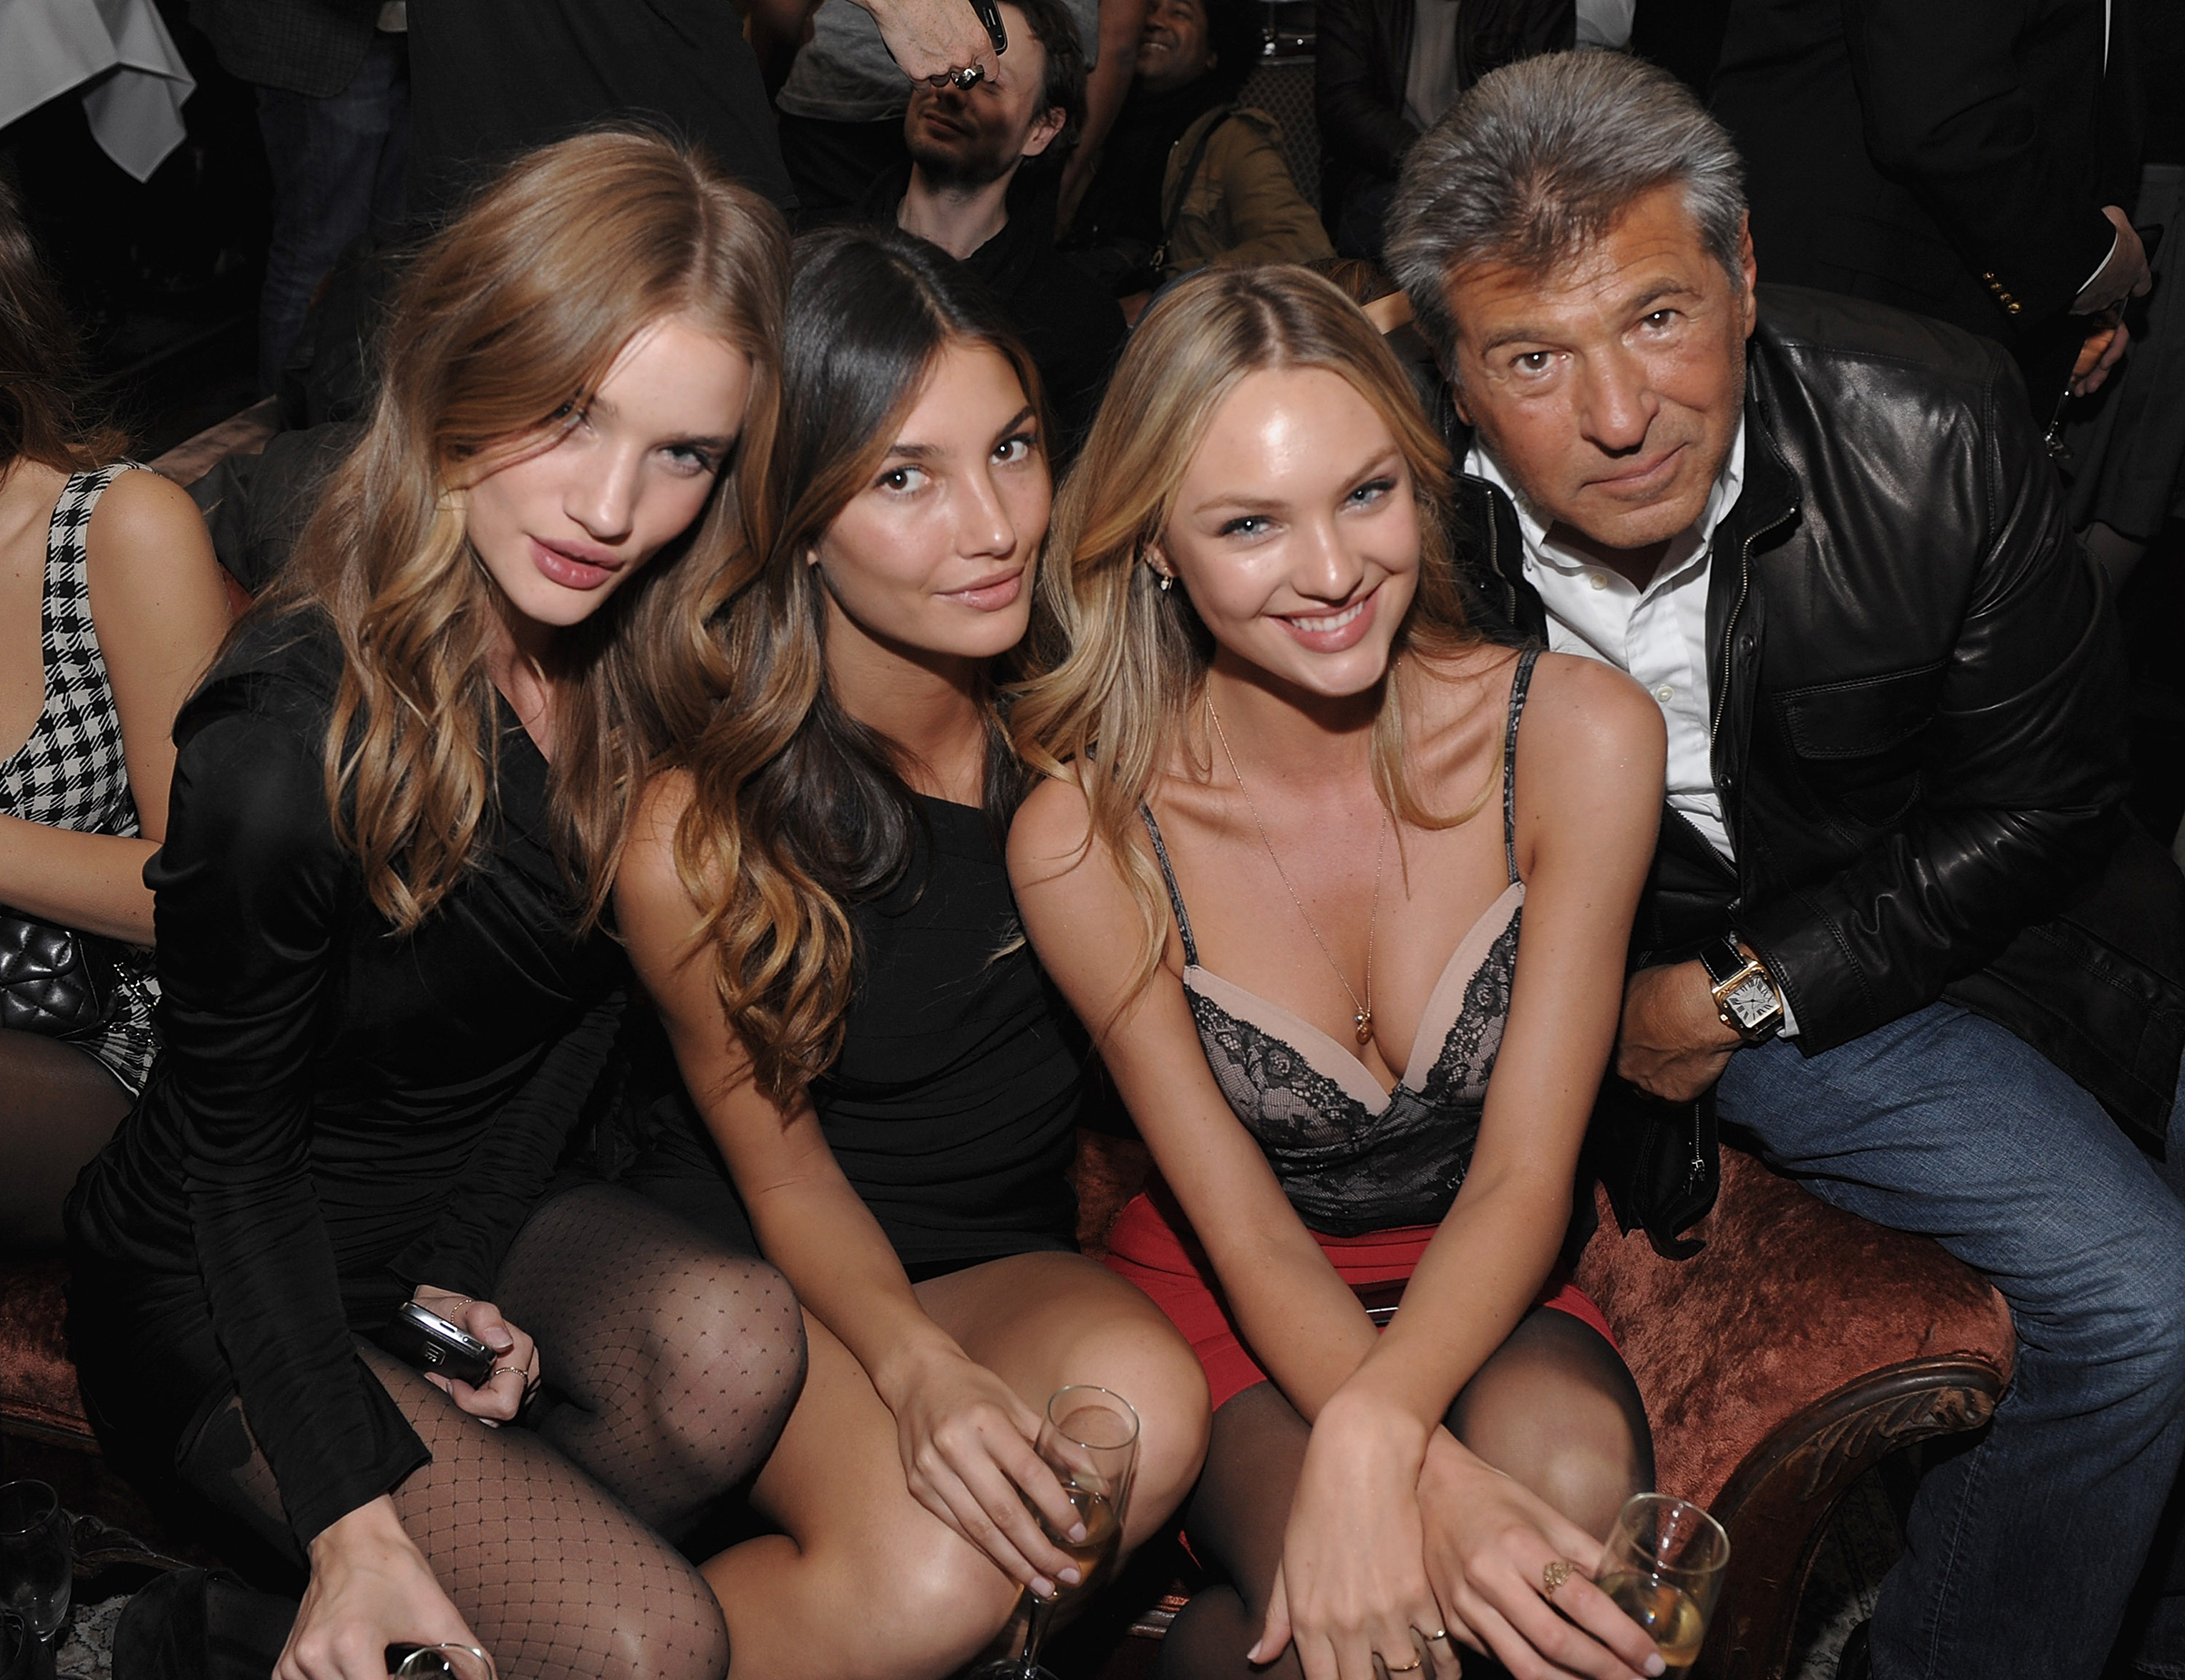 Chief marketing officer Razek poses with models Rosie Huntington-Whiteley, Lily Aldridge and Candice Swanepoel in 2009